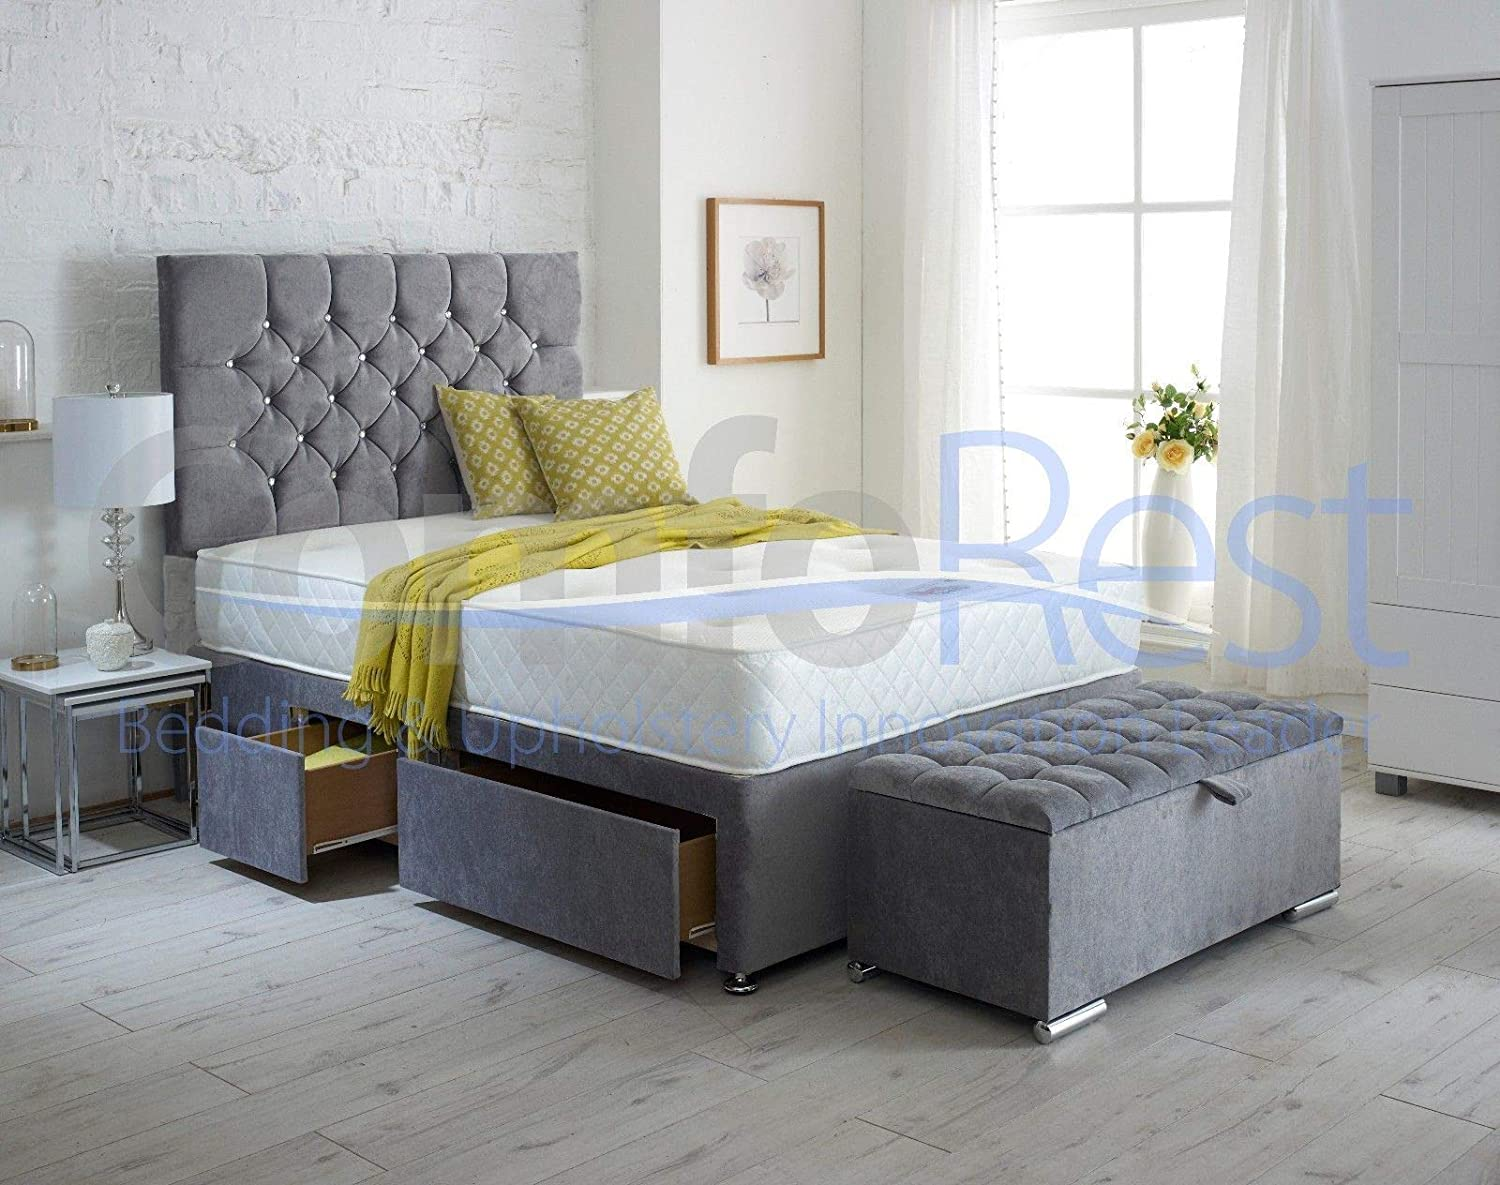 ComfoRest, Bedding & Upholstery Innovation Leader Complete Divan Bed Set (Divan Base + Mattress + Headboard (NO Drawers)) With Ottoman Box (6FT Superking, Silver Naples)